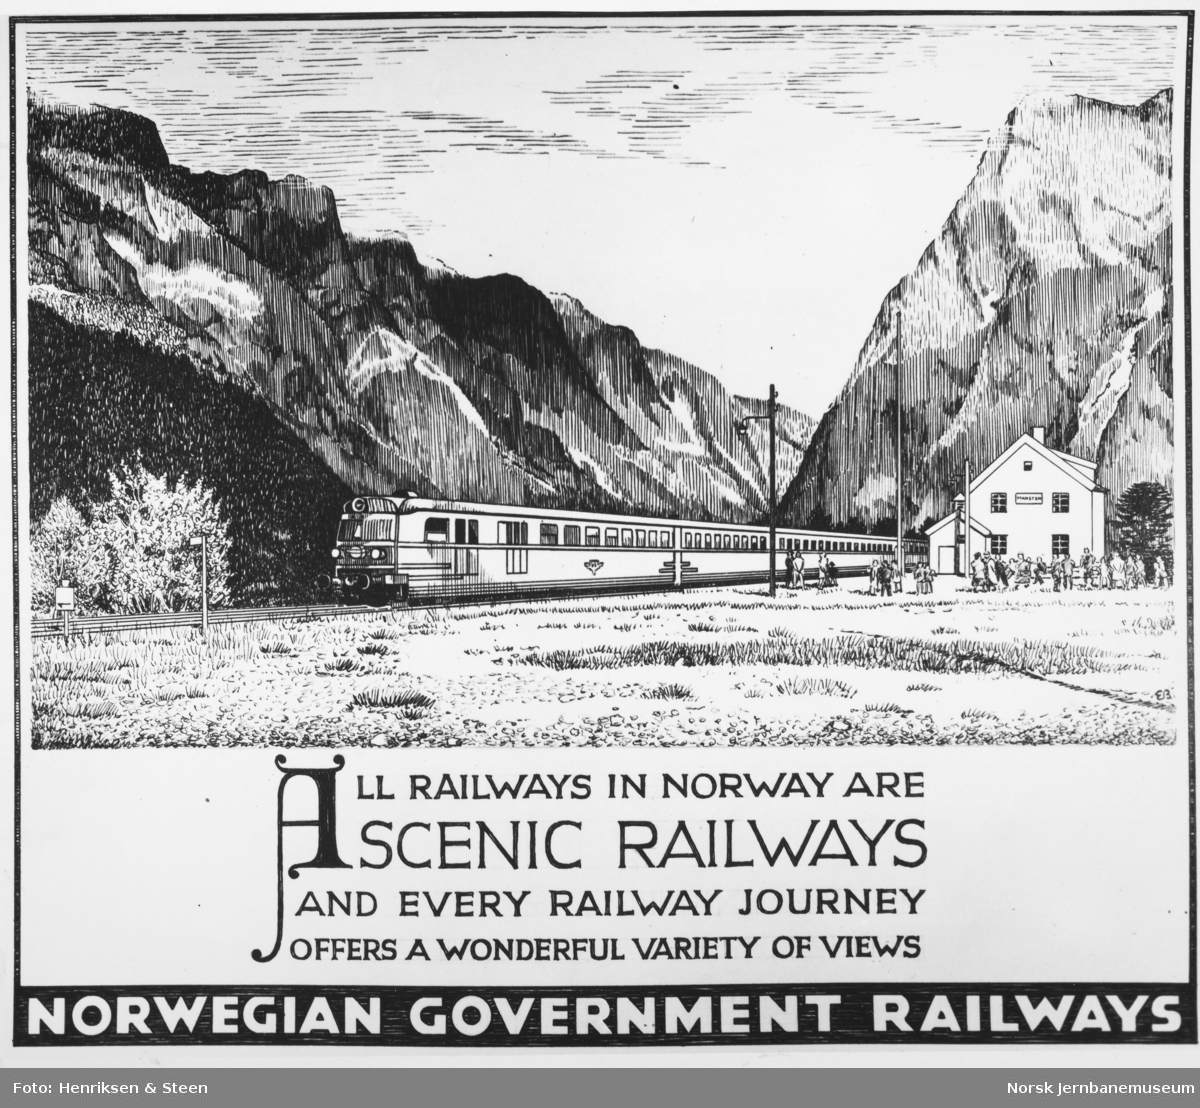 NSB-annonse: All railways in Norway are scenic railways and every railway journey offers a wonderful variety of views